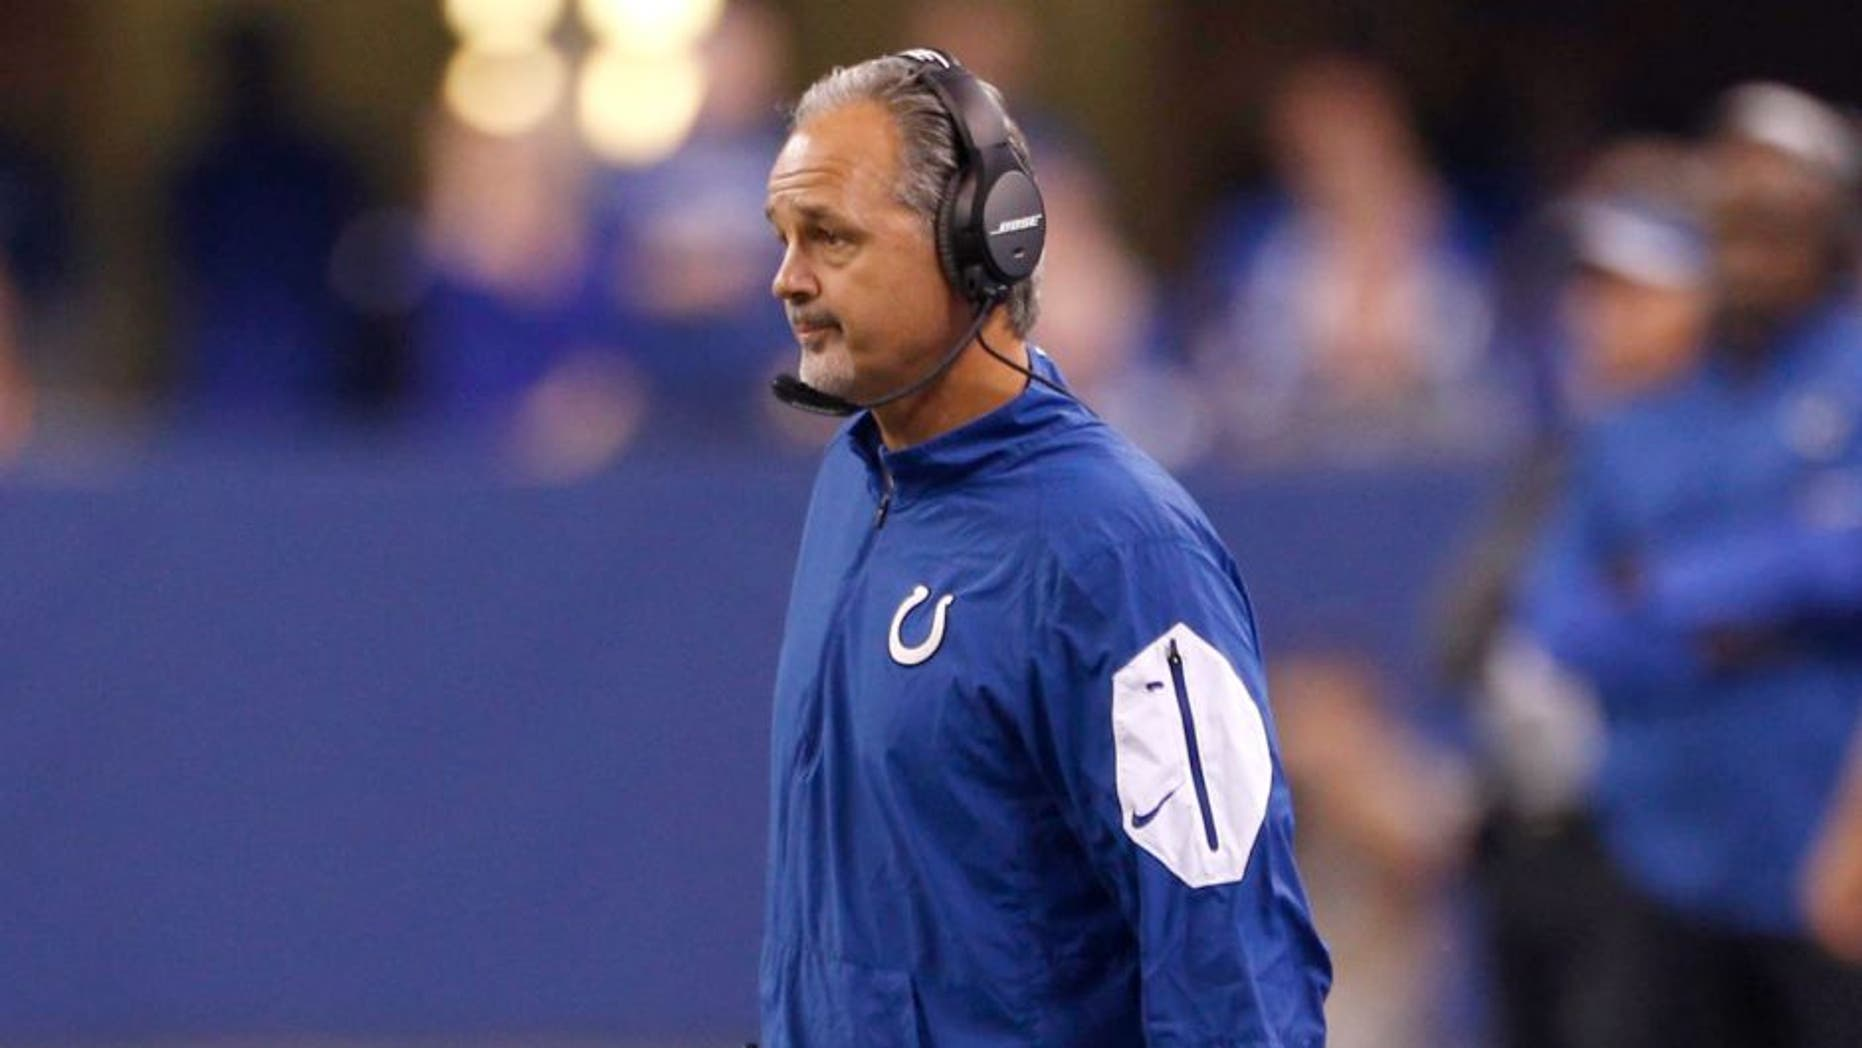 Oct 18, 2015; Indianapolis, IN, USA; Indianapolis Colts head coach Chuck Pagano during the NFL game against the New England Patriots at Lucas Oil Stadium. Mandatory Credit: Brian Spurlock-USA TODAY Sports